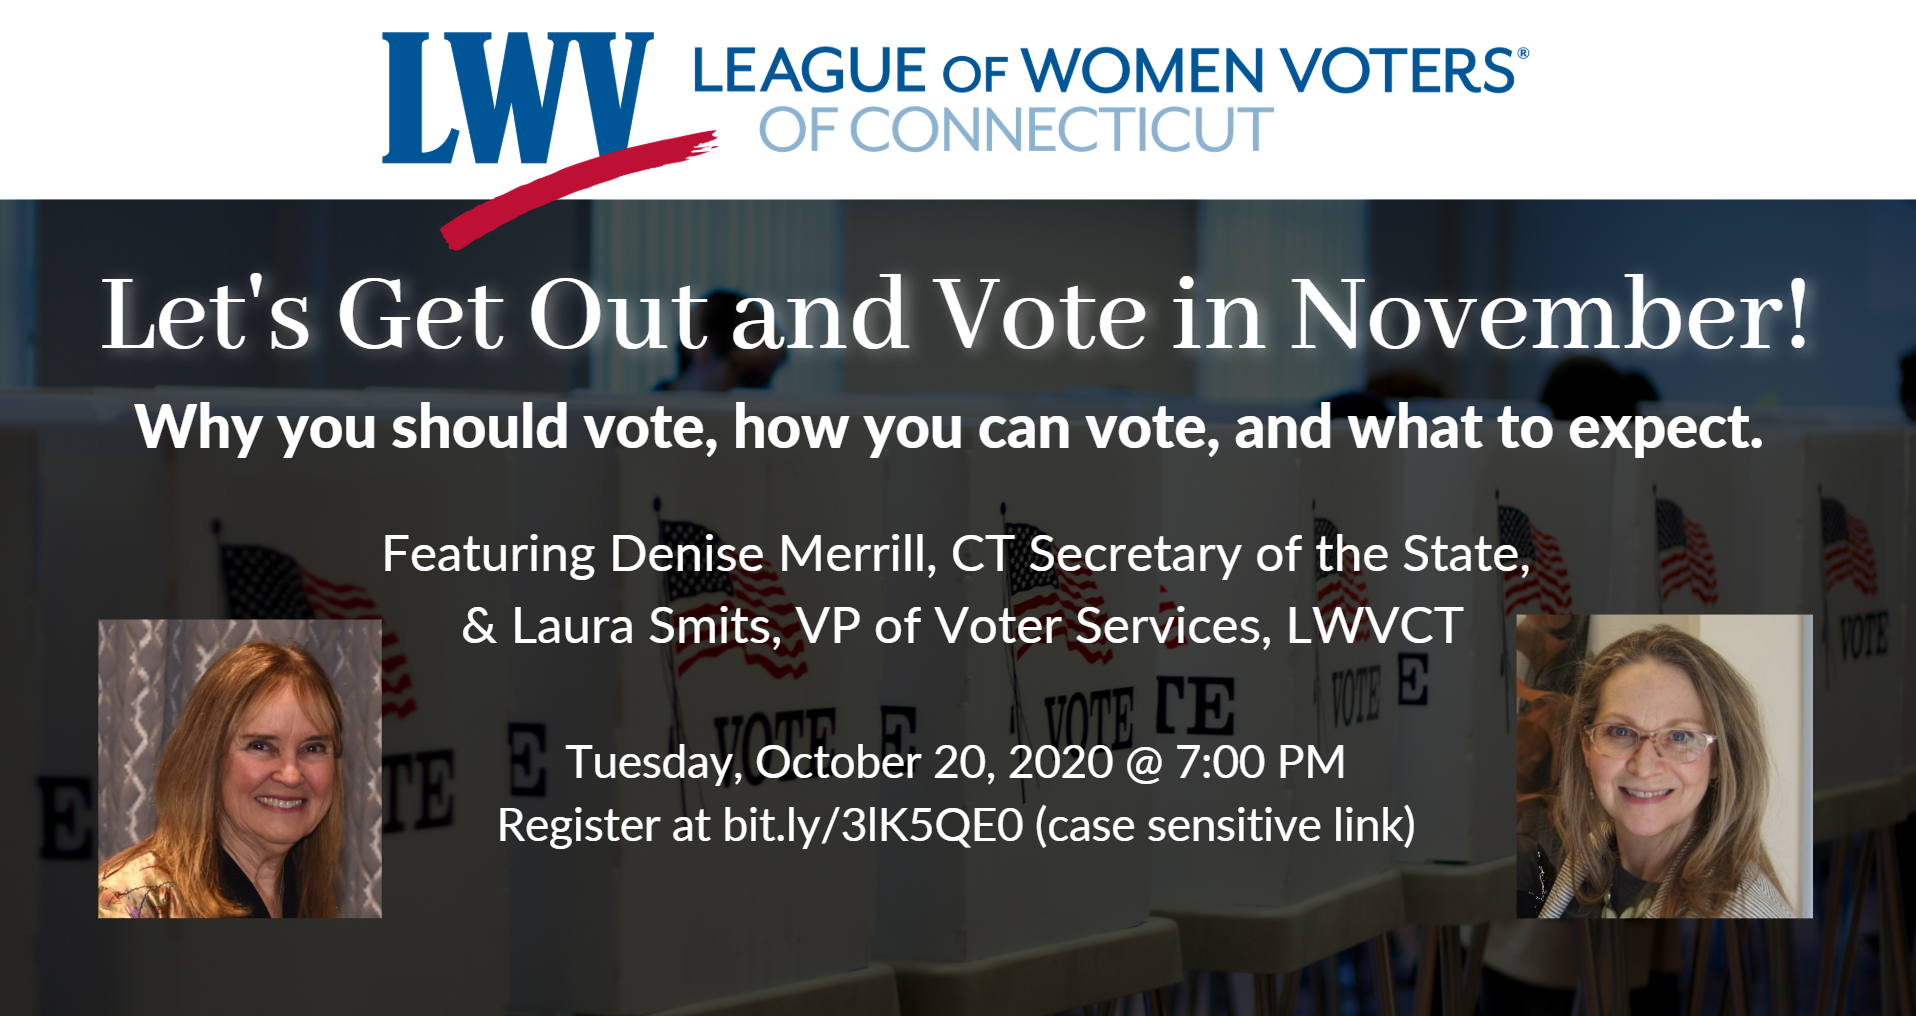 LWVCT Hosts Get out and Vote in November event image